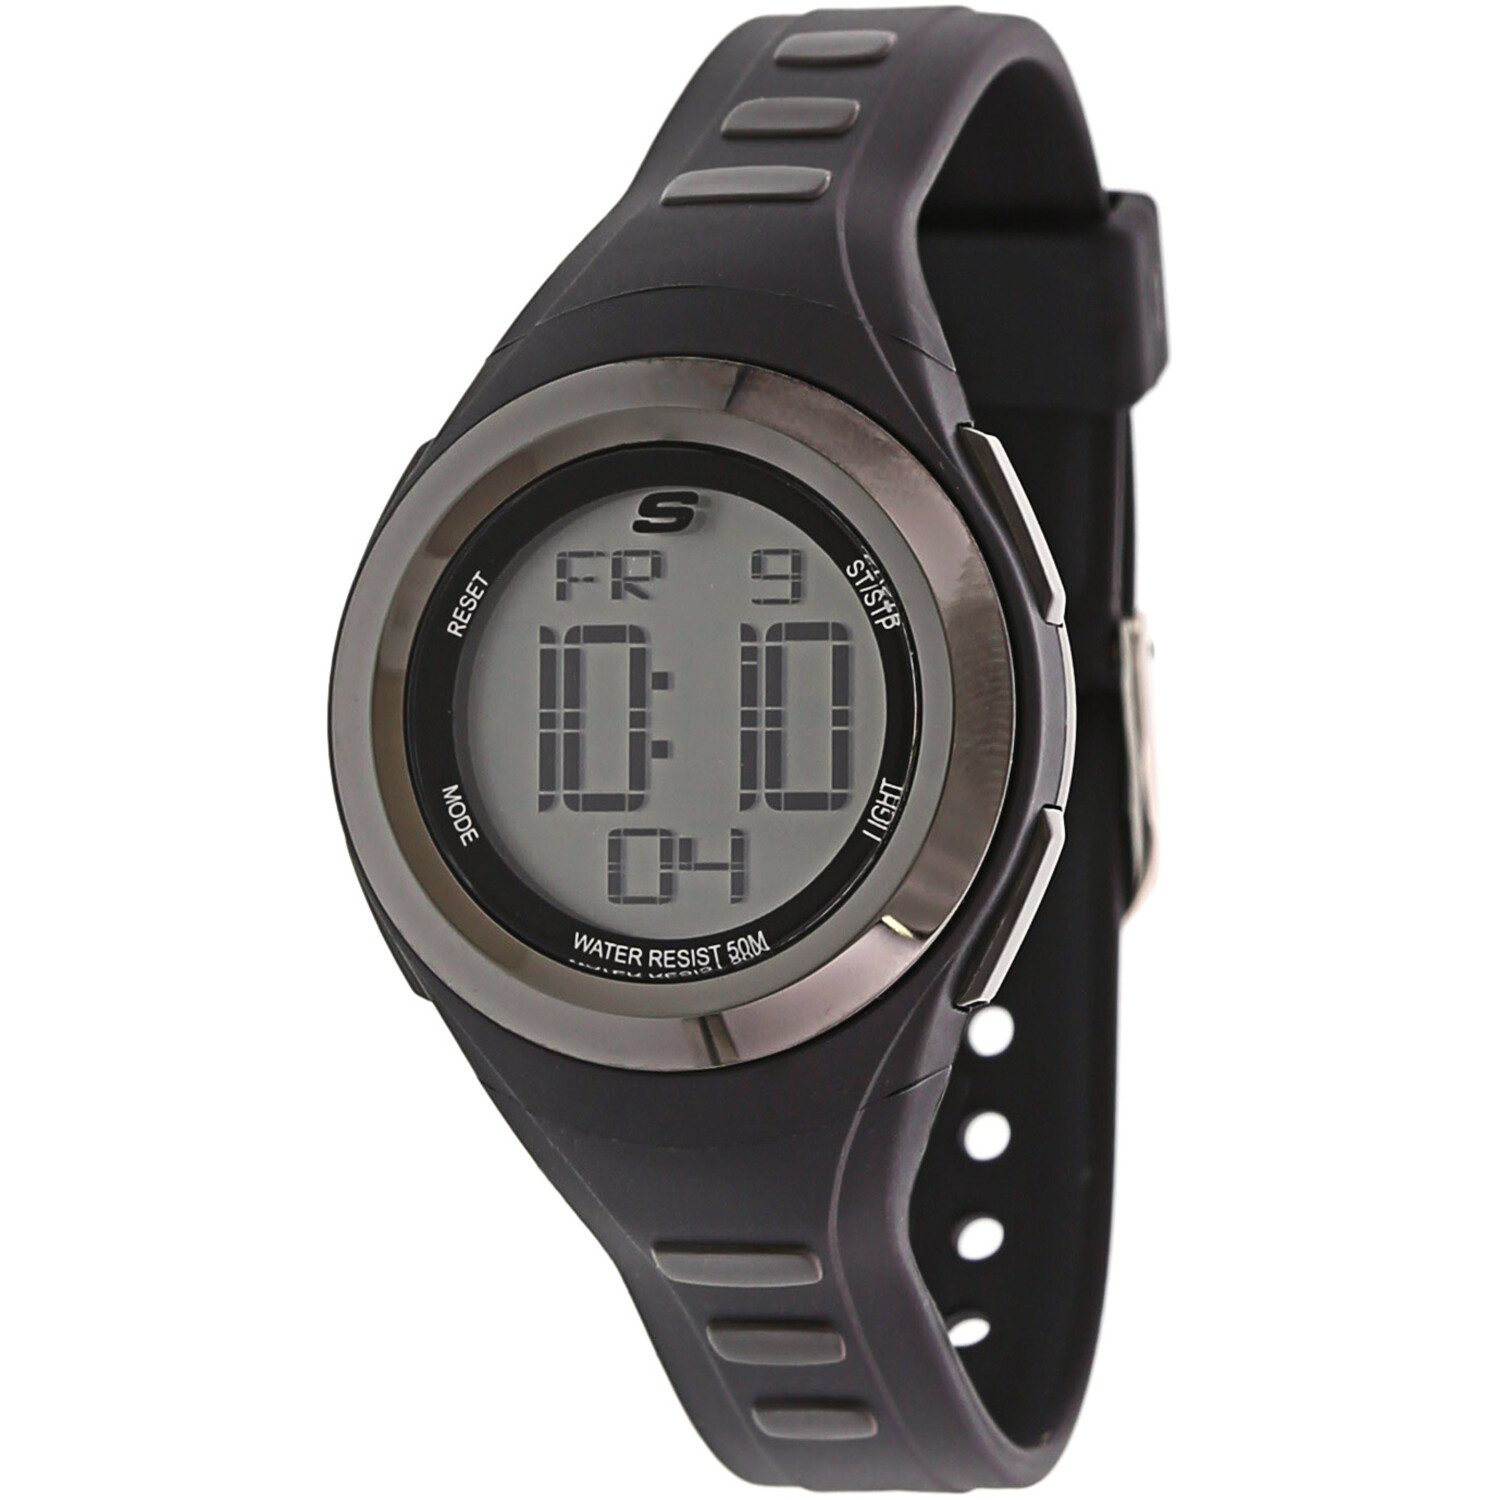 Skechers Watch SR2063 Tennyson Digital Display, Chronograph, Water Resistant, Backlight, Alarm, Black